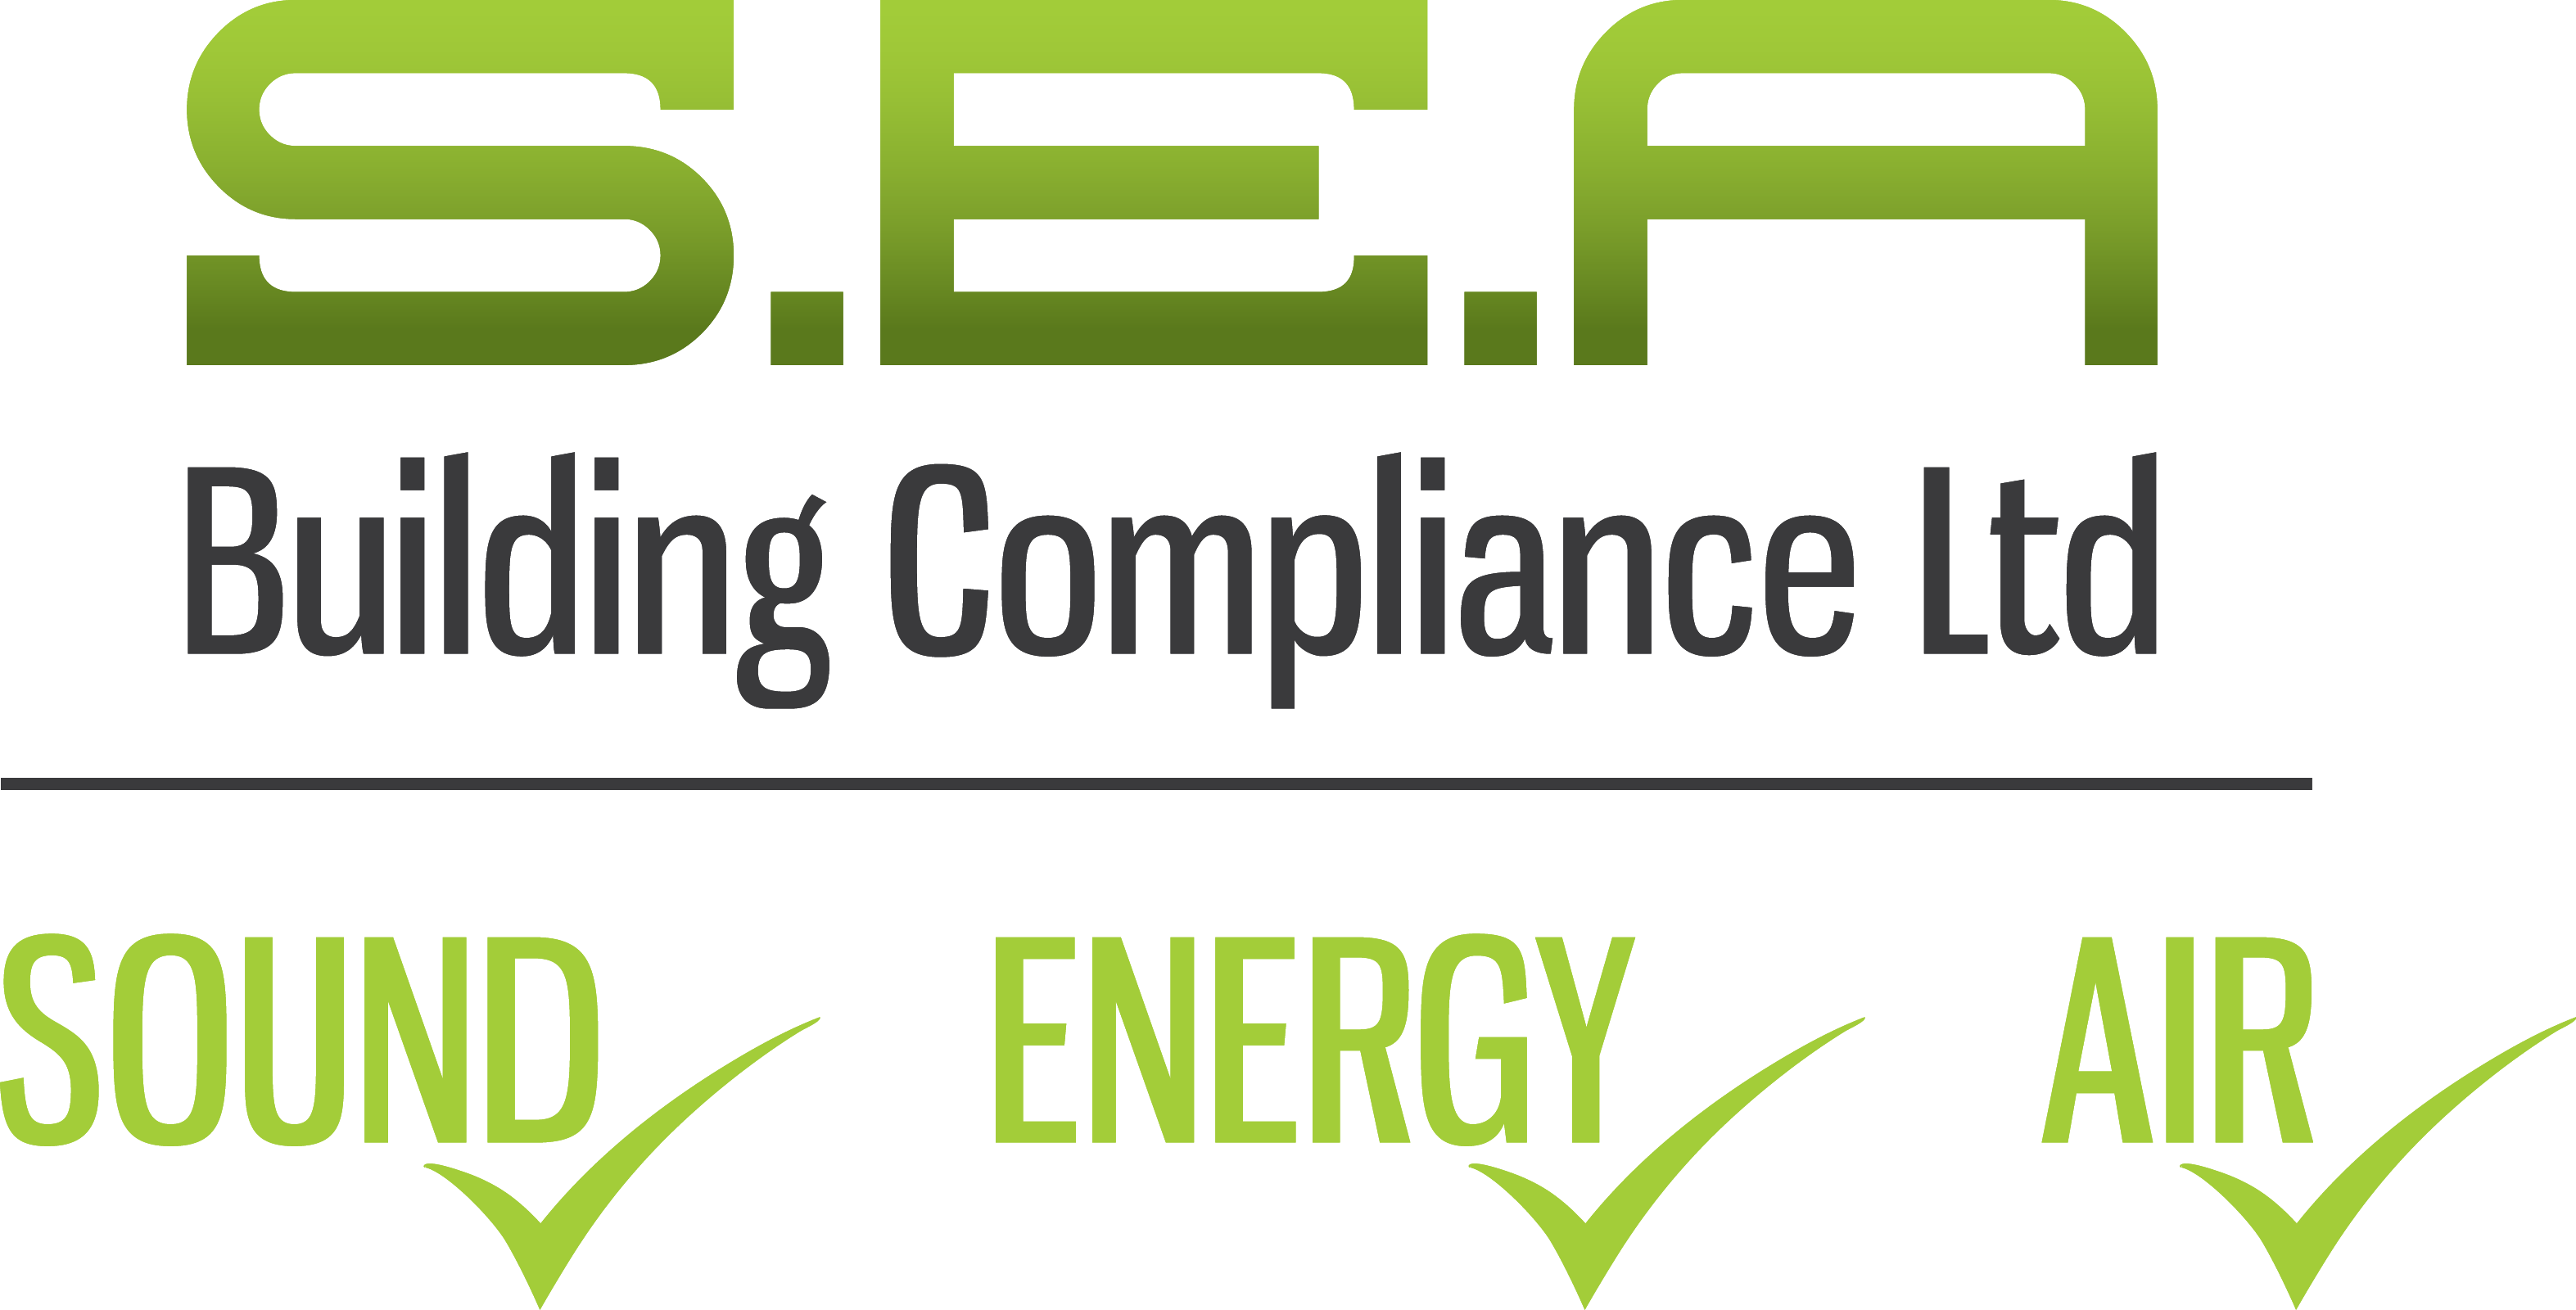 Building compliance testing, consultation and certification services